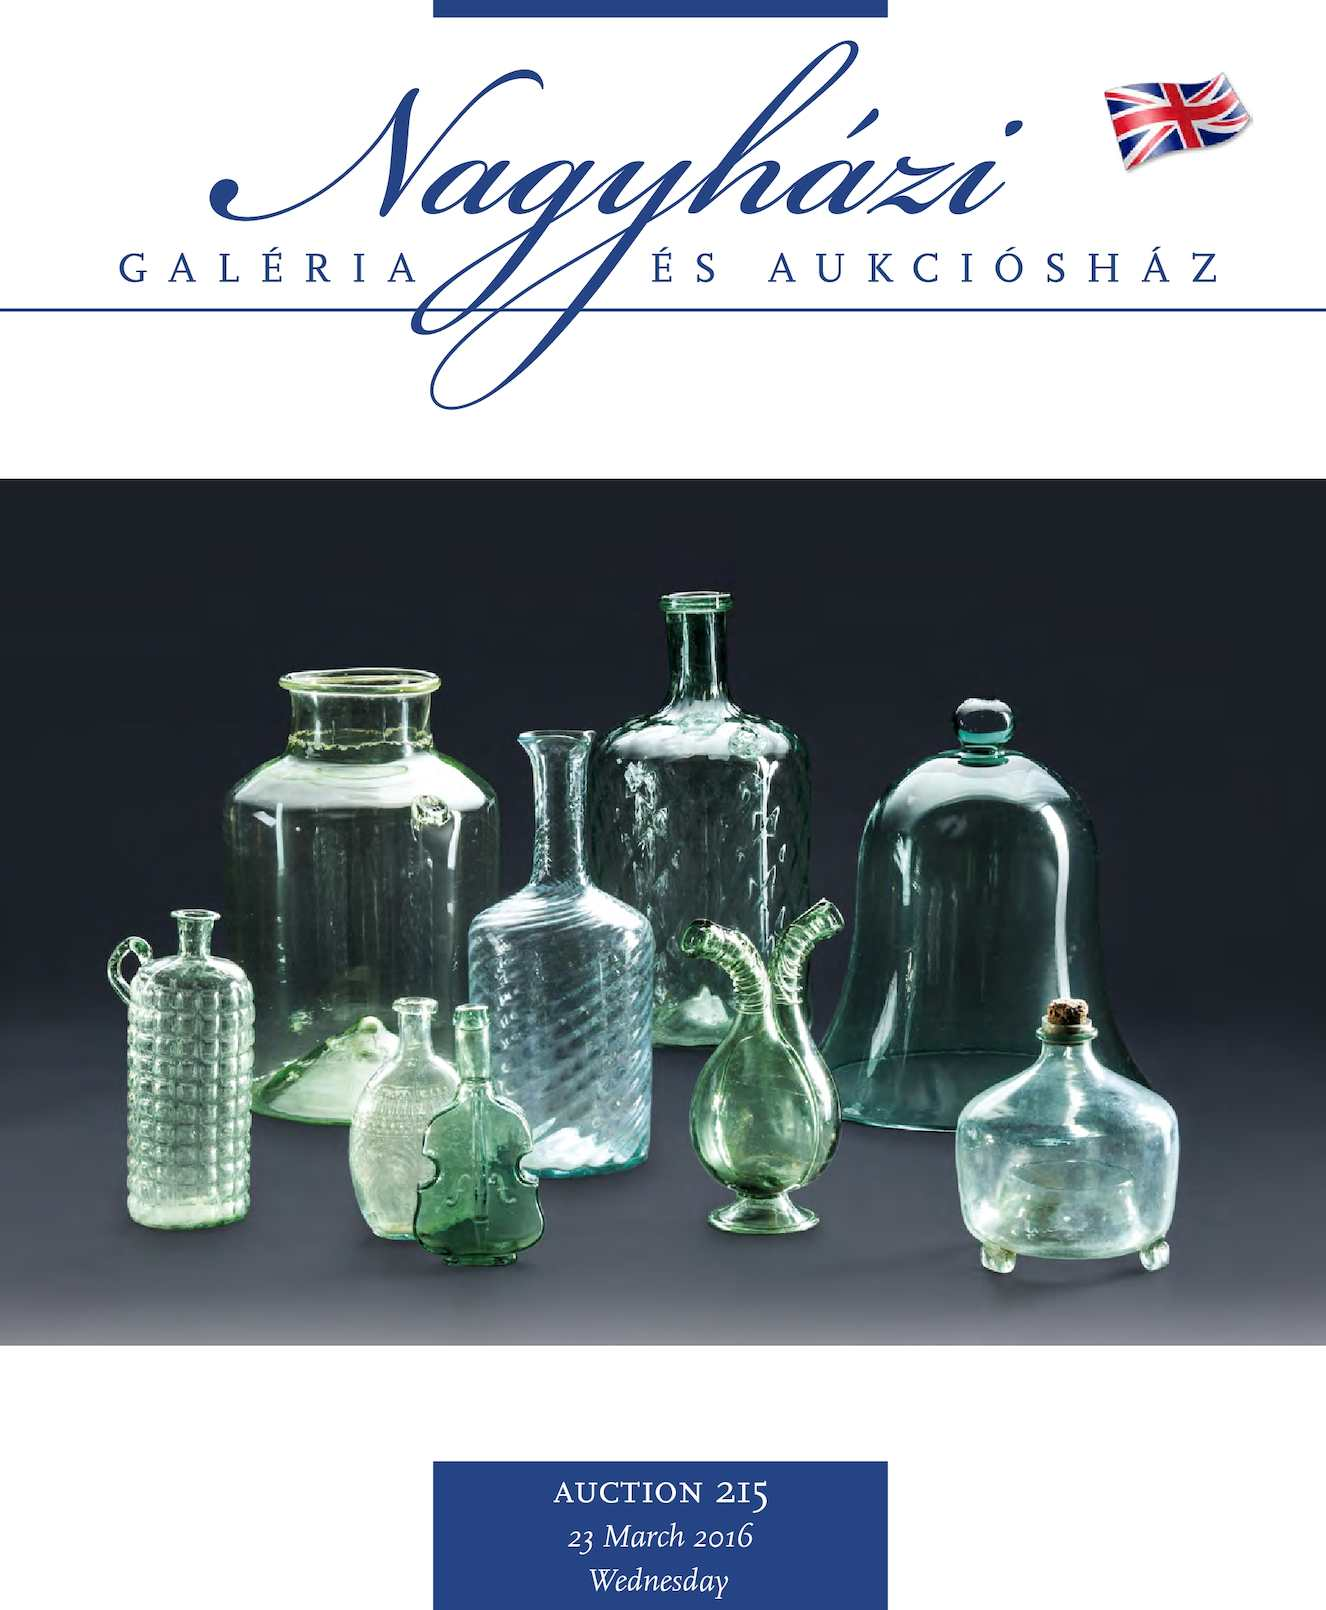 Nagyhazi Gallery and Auction house - Auction 215